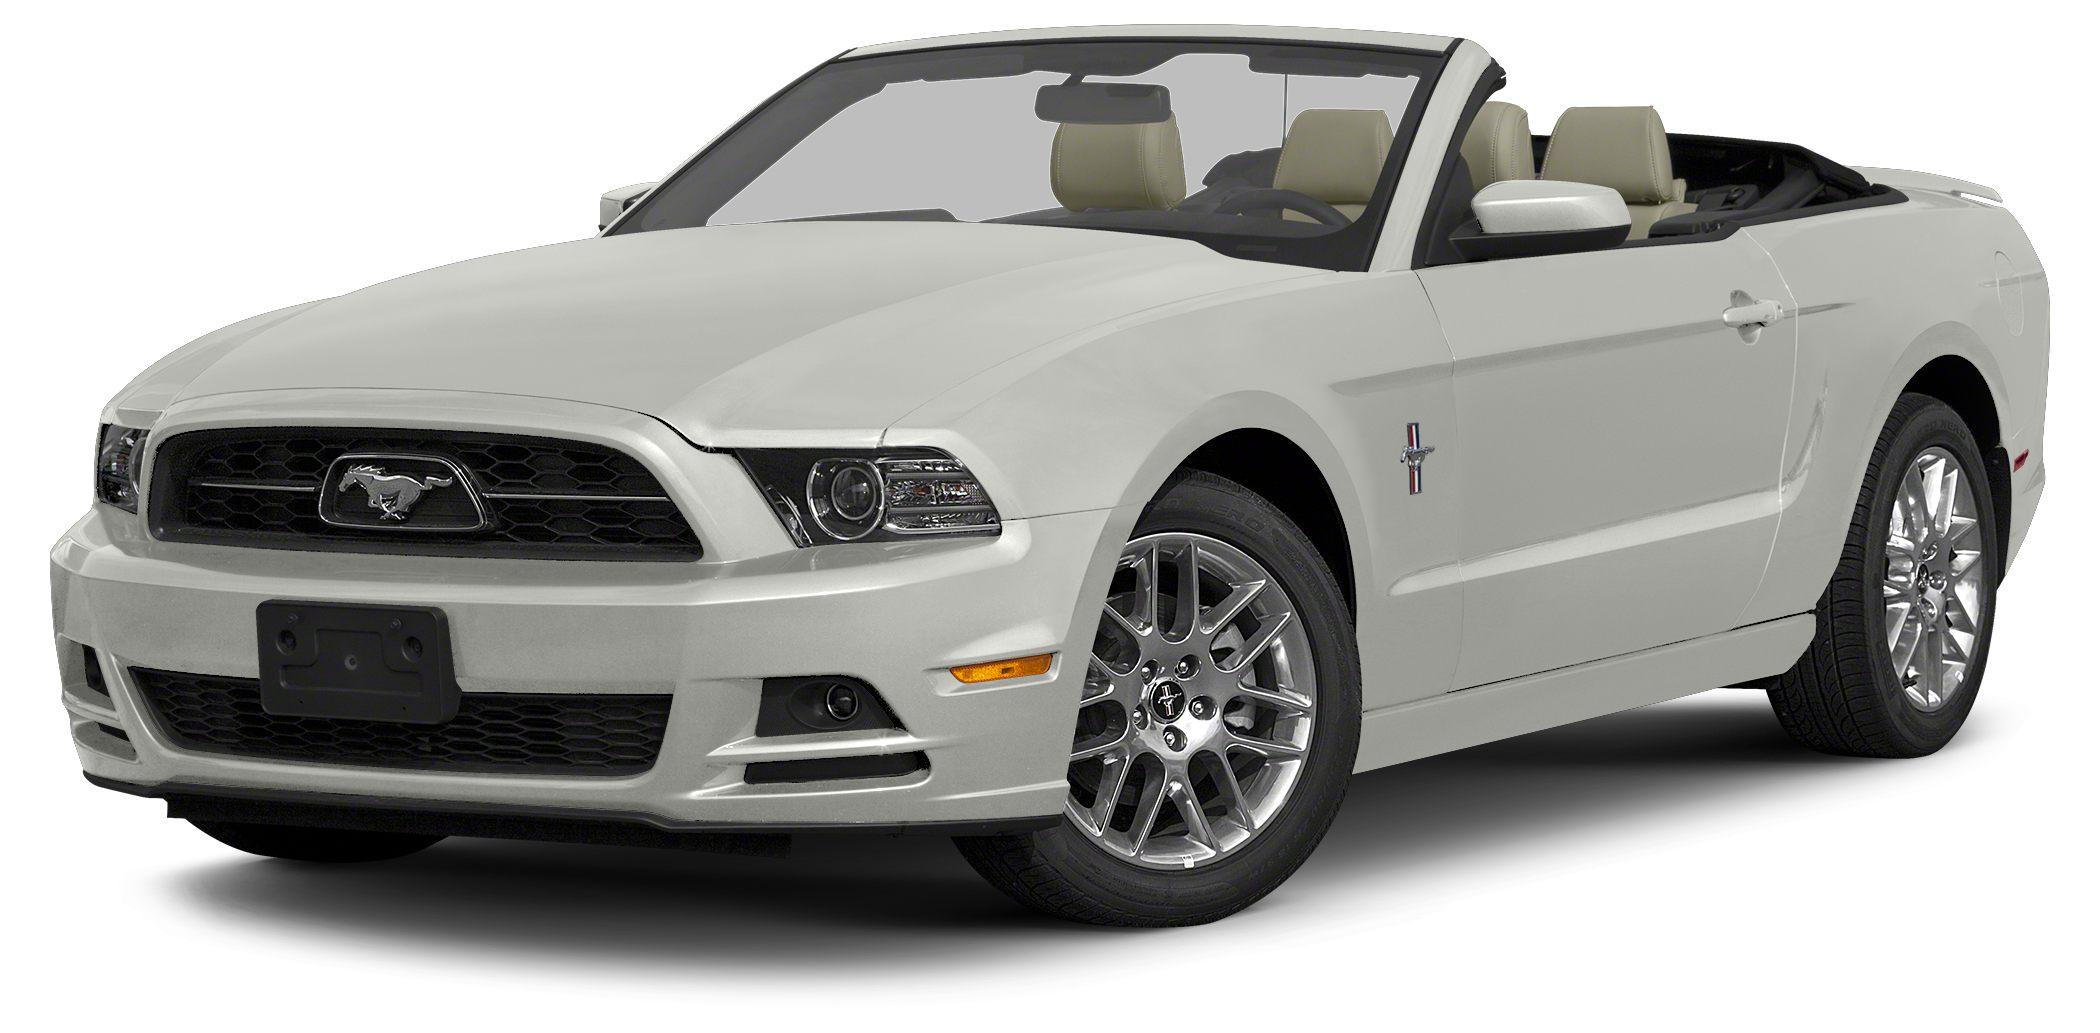 2014 Ford Mustang V6 NON SMOKER FORD CERTIFIED PRE-OWNED VEHICLE ONE OWNER STATE INSPECTION V